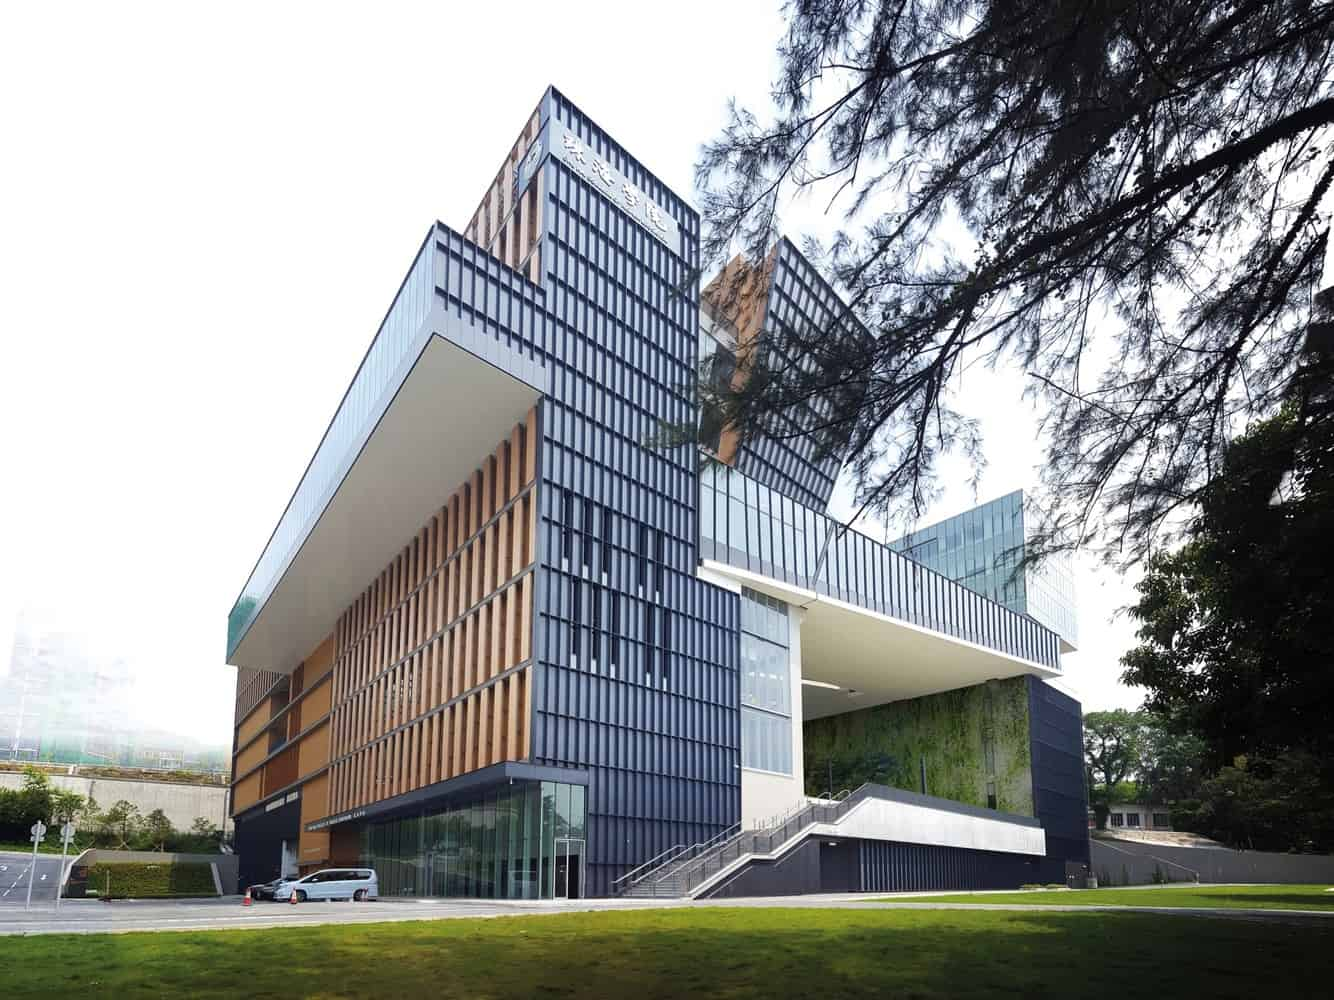 Imposing and Modern Design of a College Campus in the City of Tuen Mun, in Hong Kong